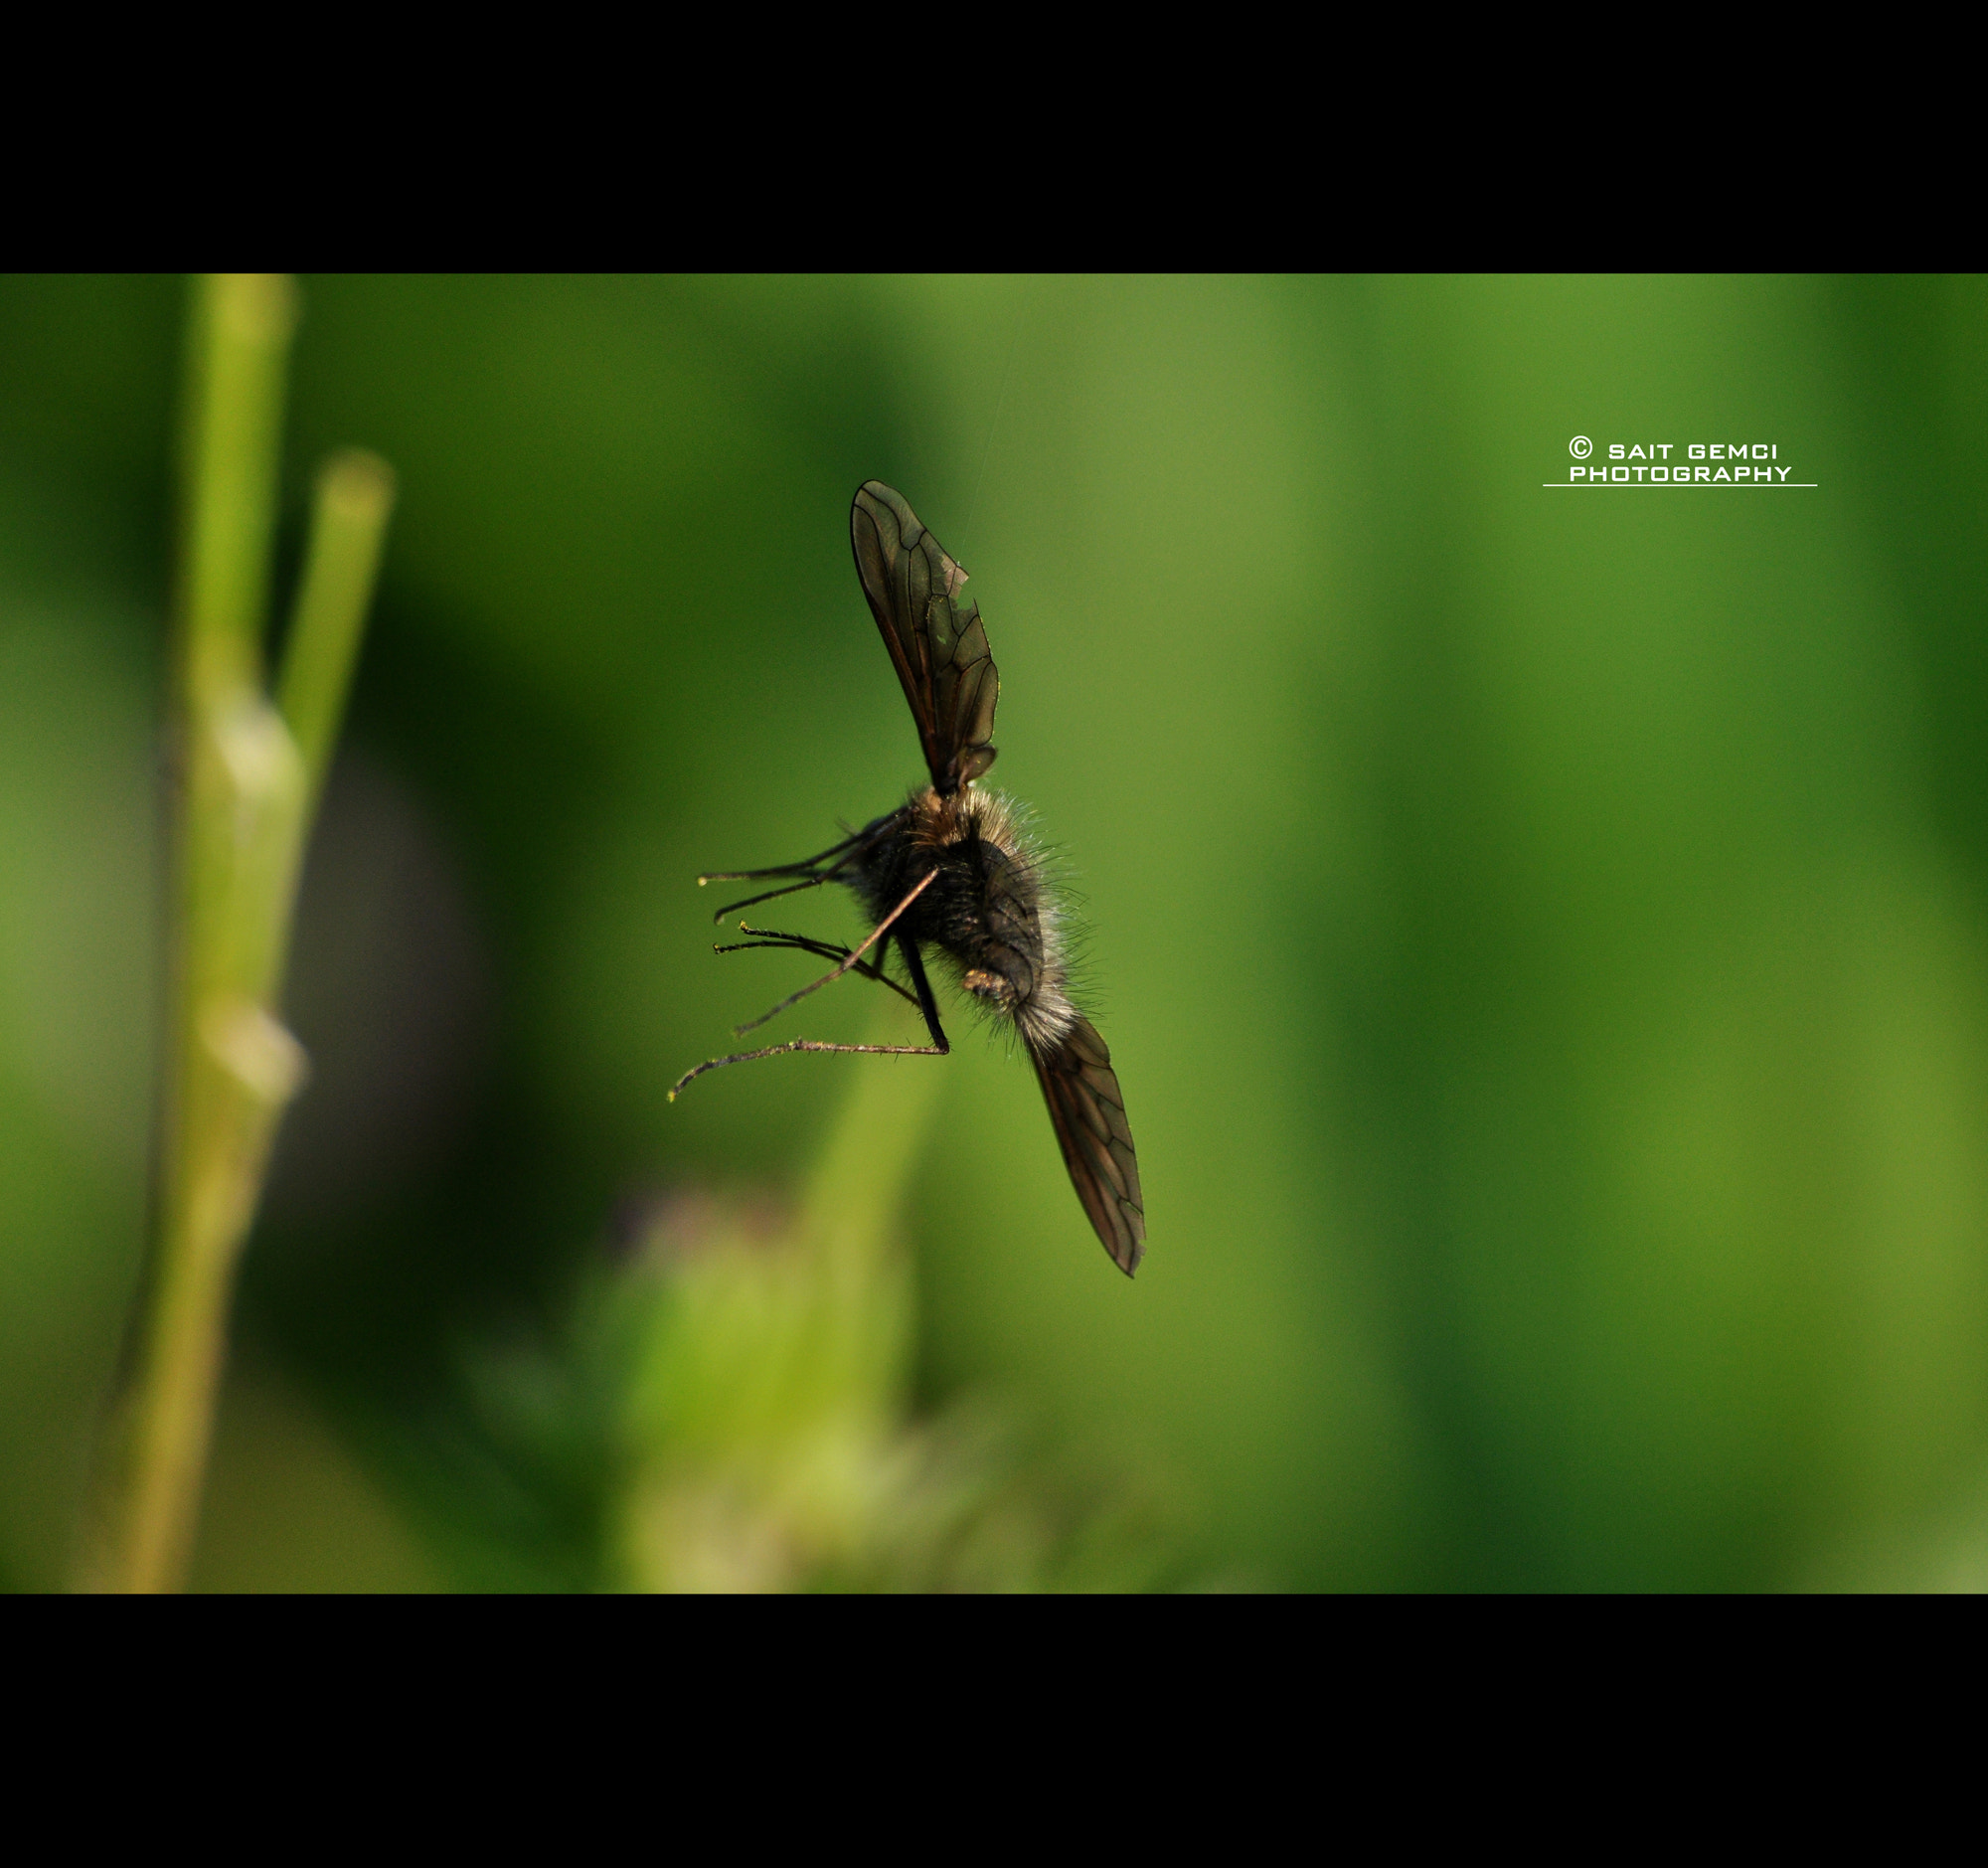 Photograph FLY by Sait Gemci on 500px